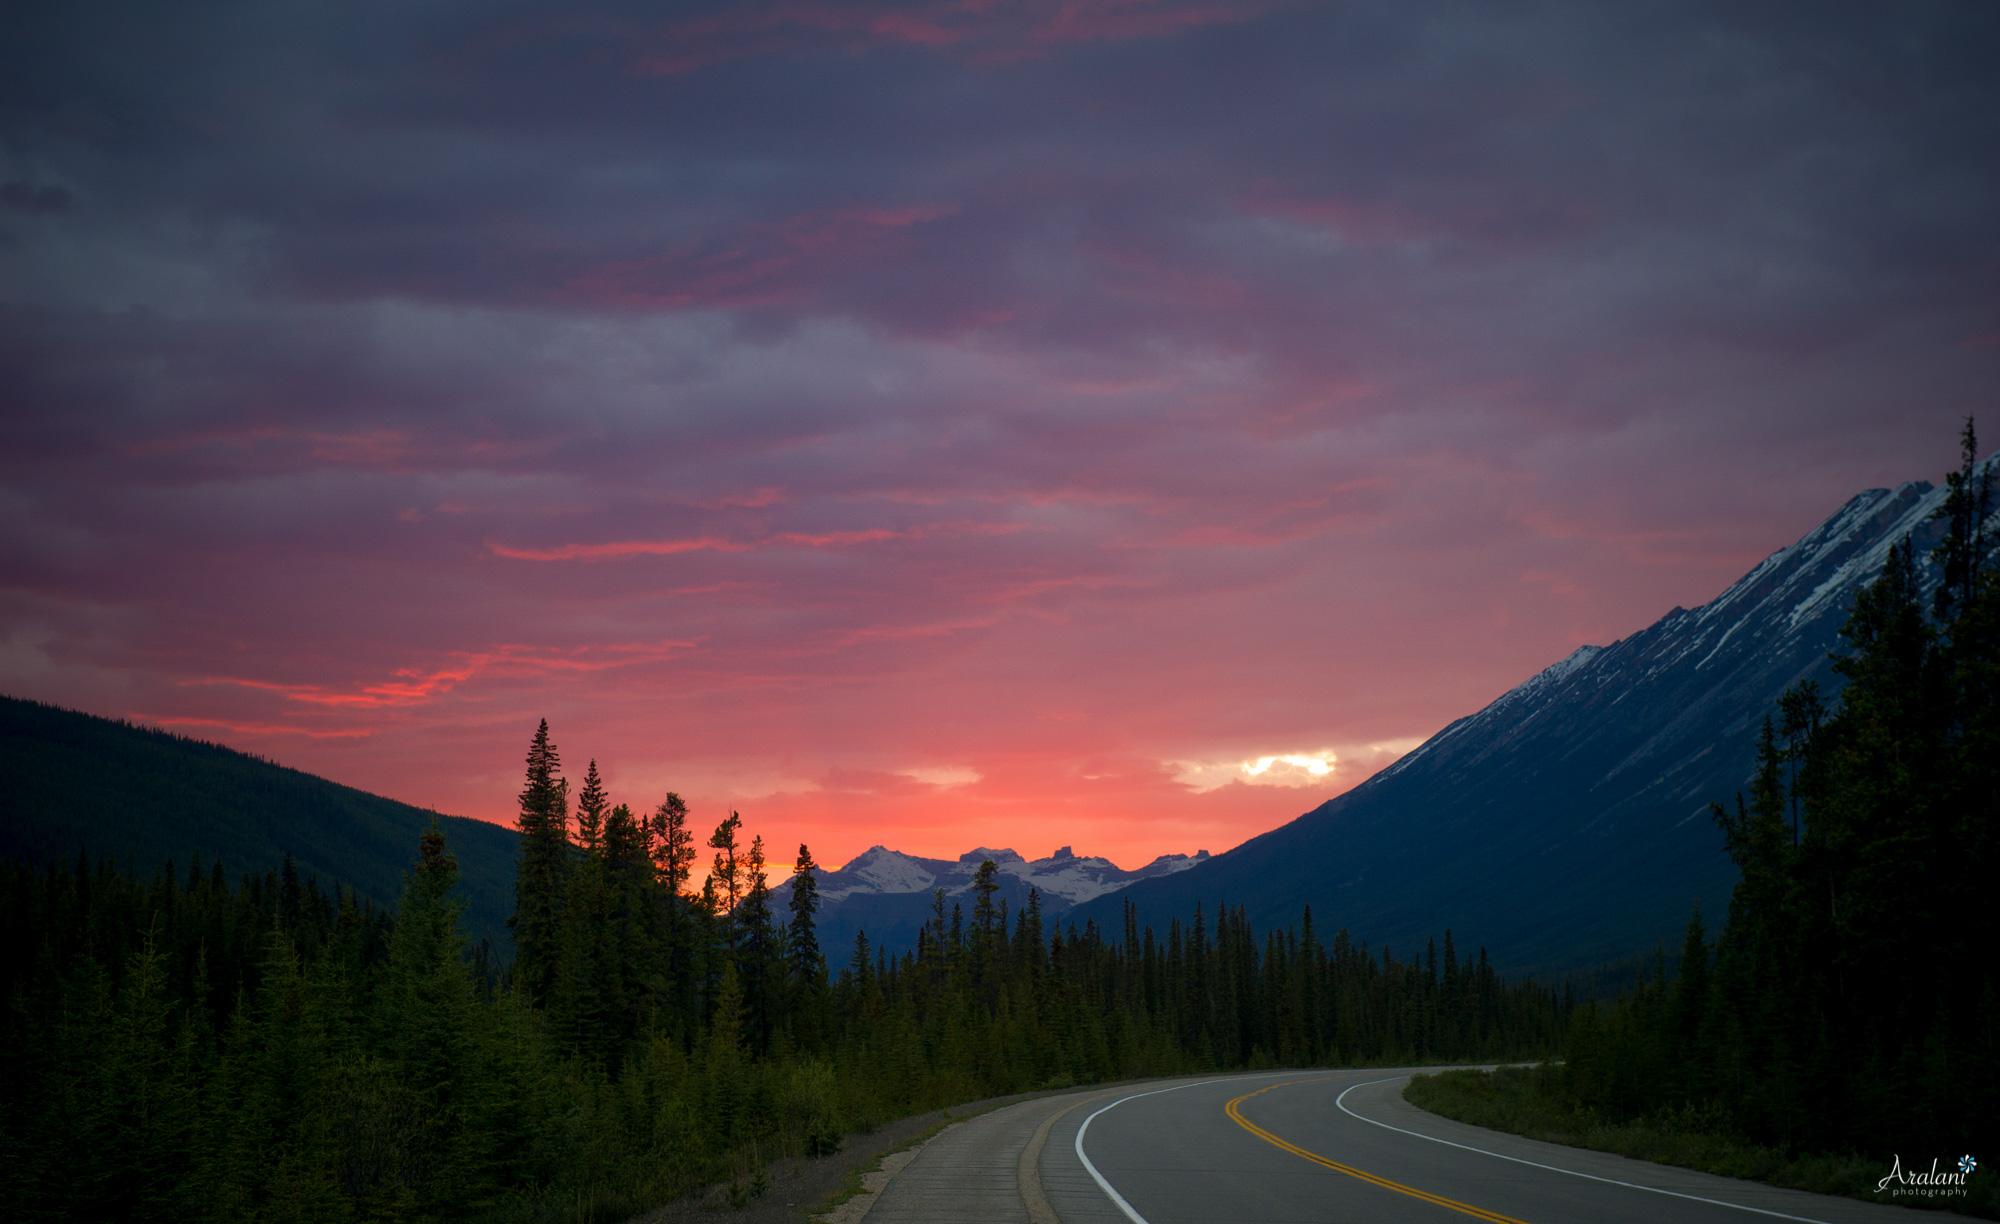 The Icefields Parkway in Jasper National Park, Canada.